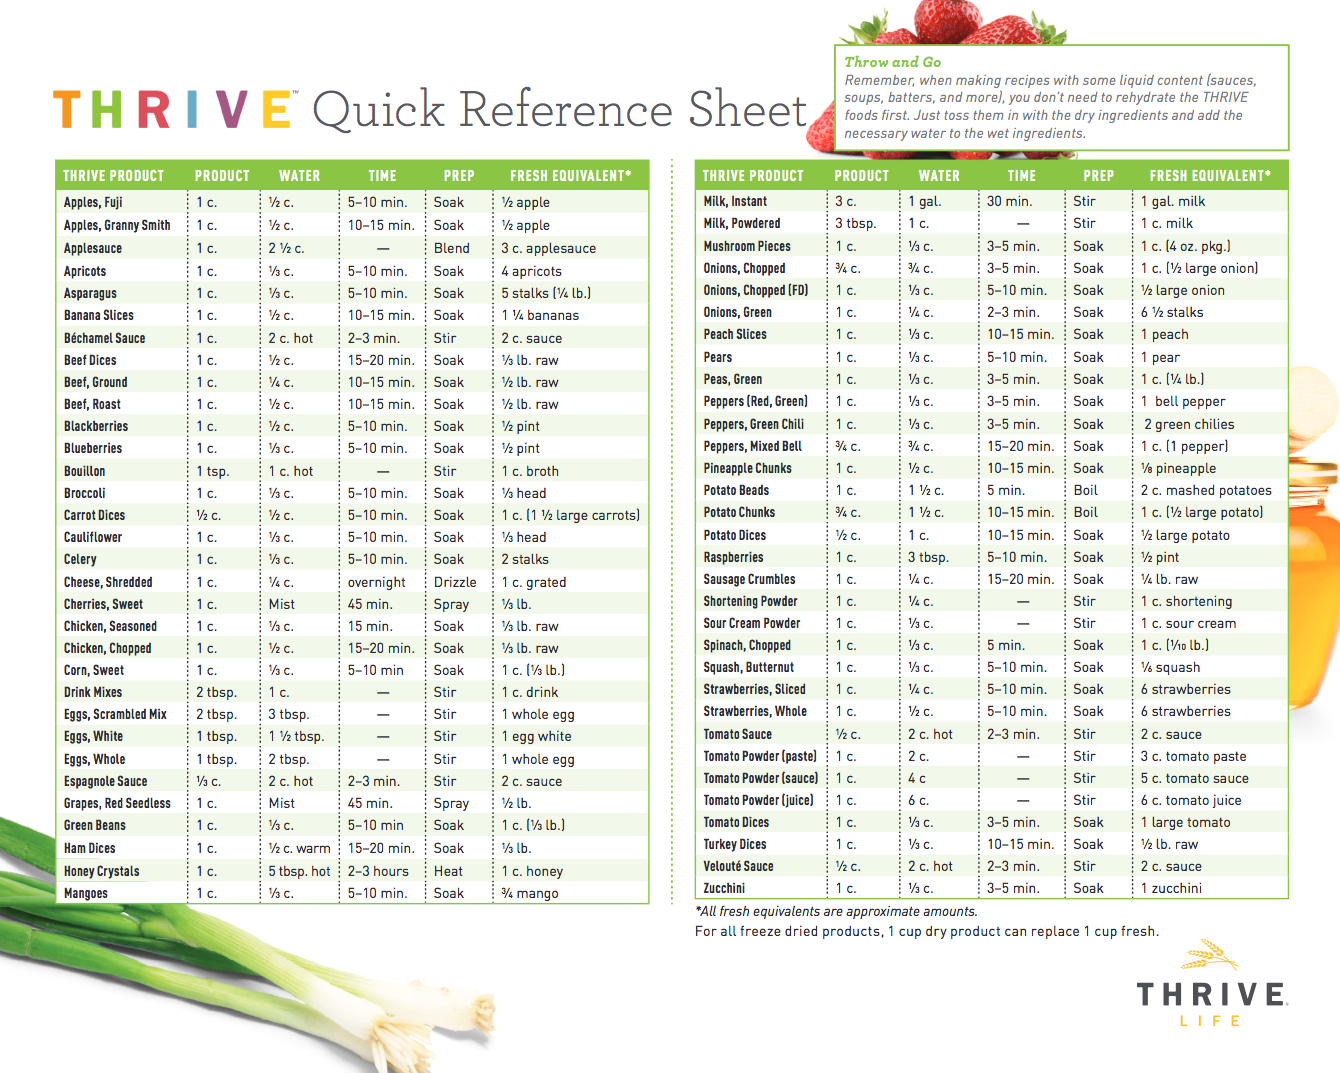 Quick Reference Chart For Thrive Life Freeze Dried Foods Rehydration And Equivalents Thrivefreezedrie Thrive Recipes Thrive Food Storage Freeze Drying Food